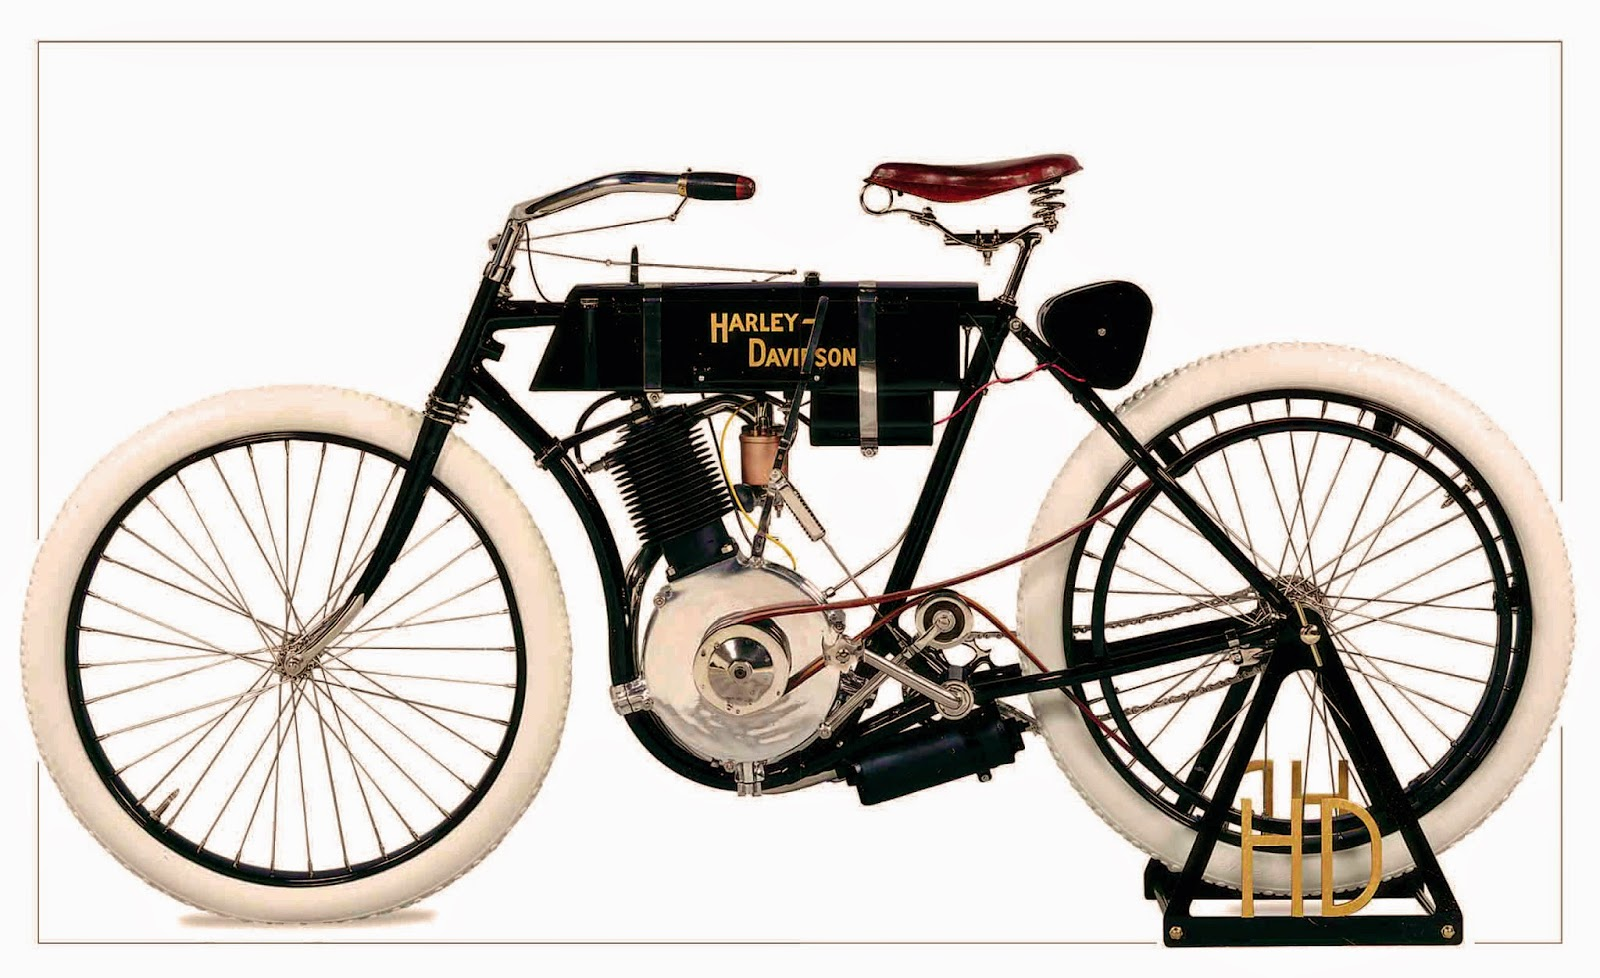 First Harley Davidson: Harley Davidson 1905 Model No.1